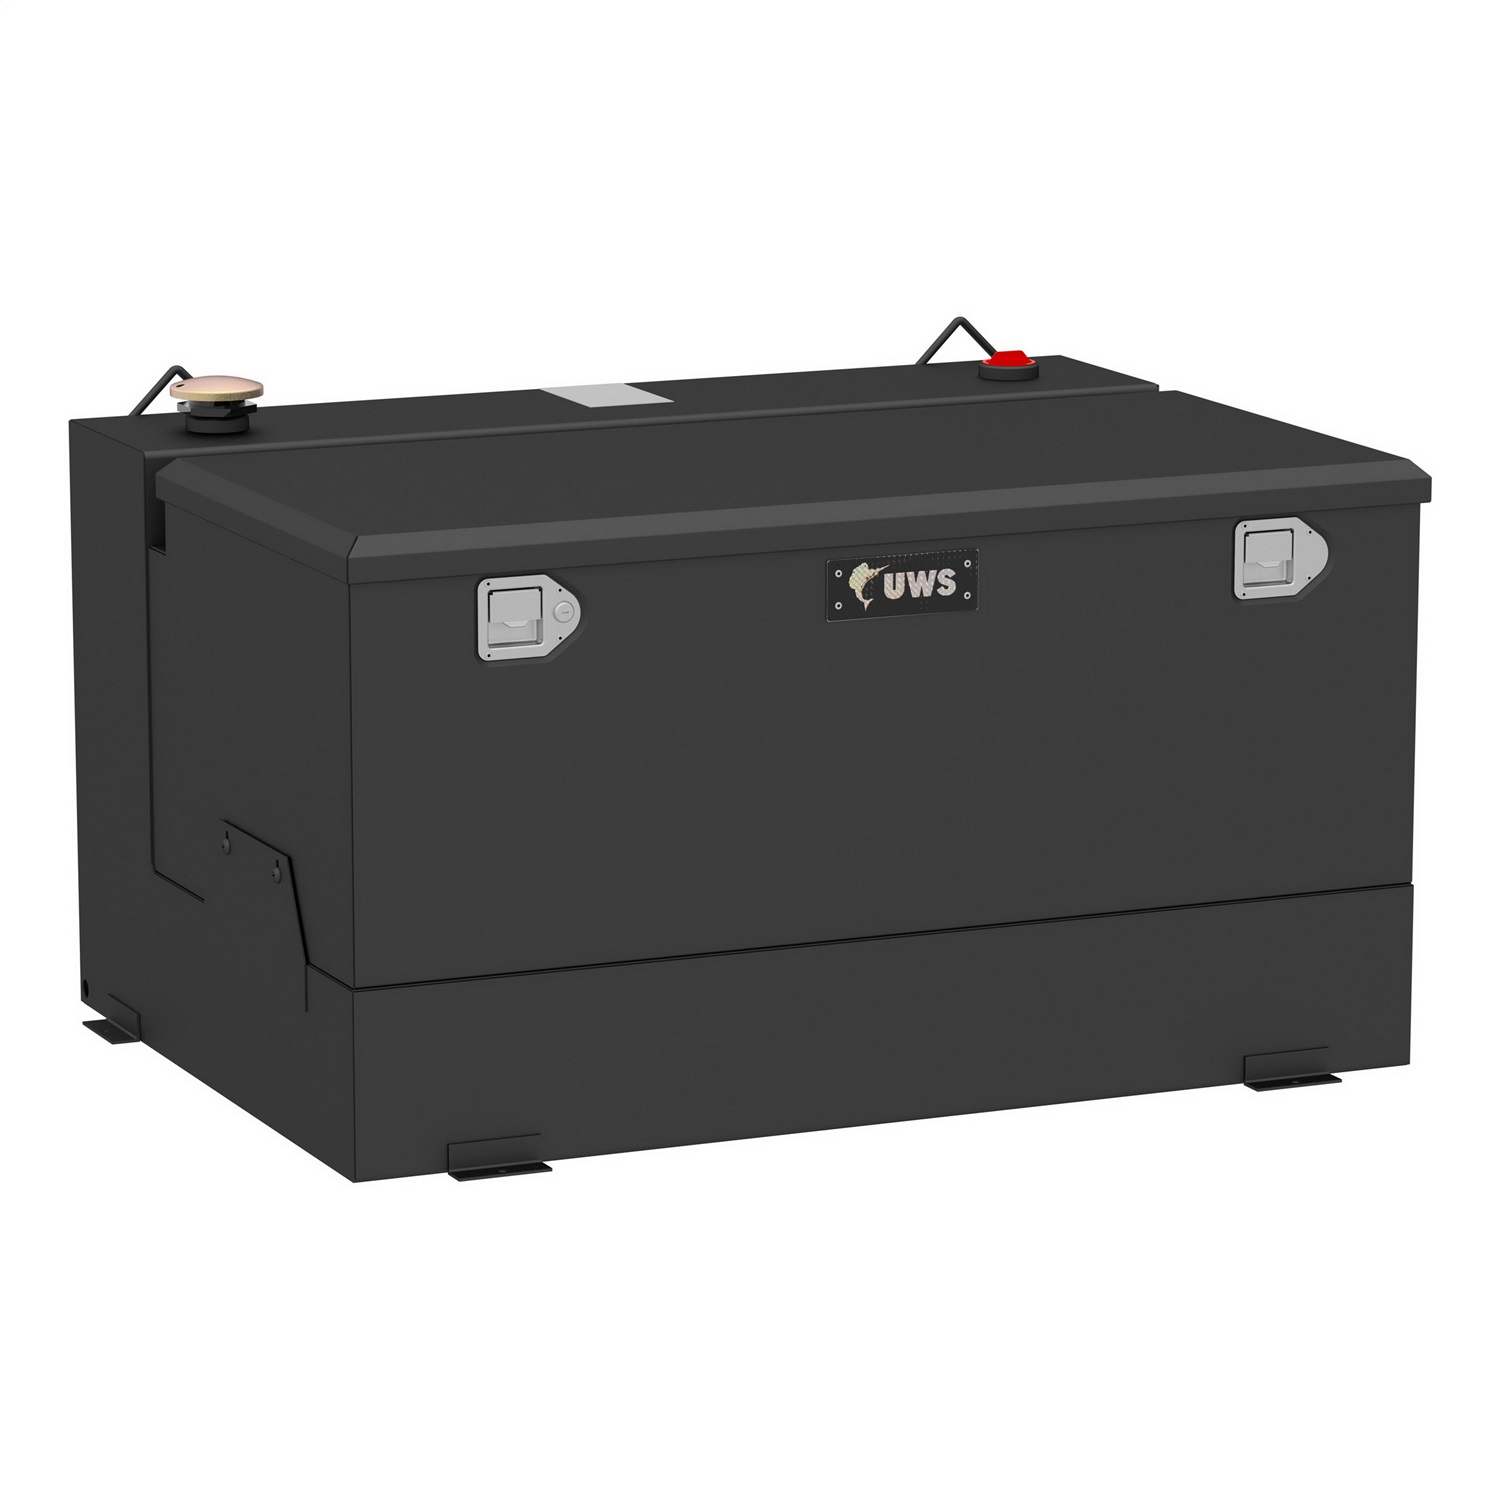 Combination Liquid Transfer Tank/Tool Box, 85 Gallon, Non Flammable Liquid, Matte Black, Steel